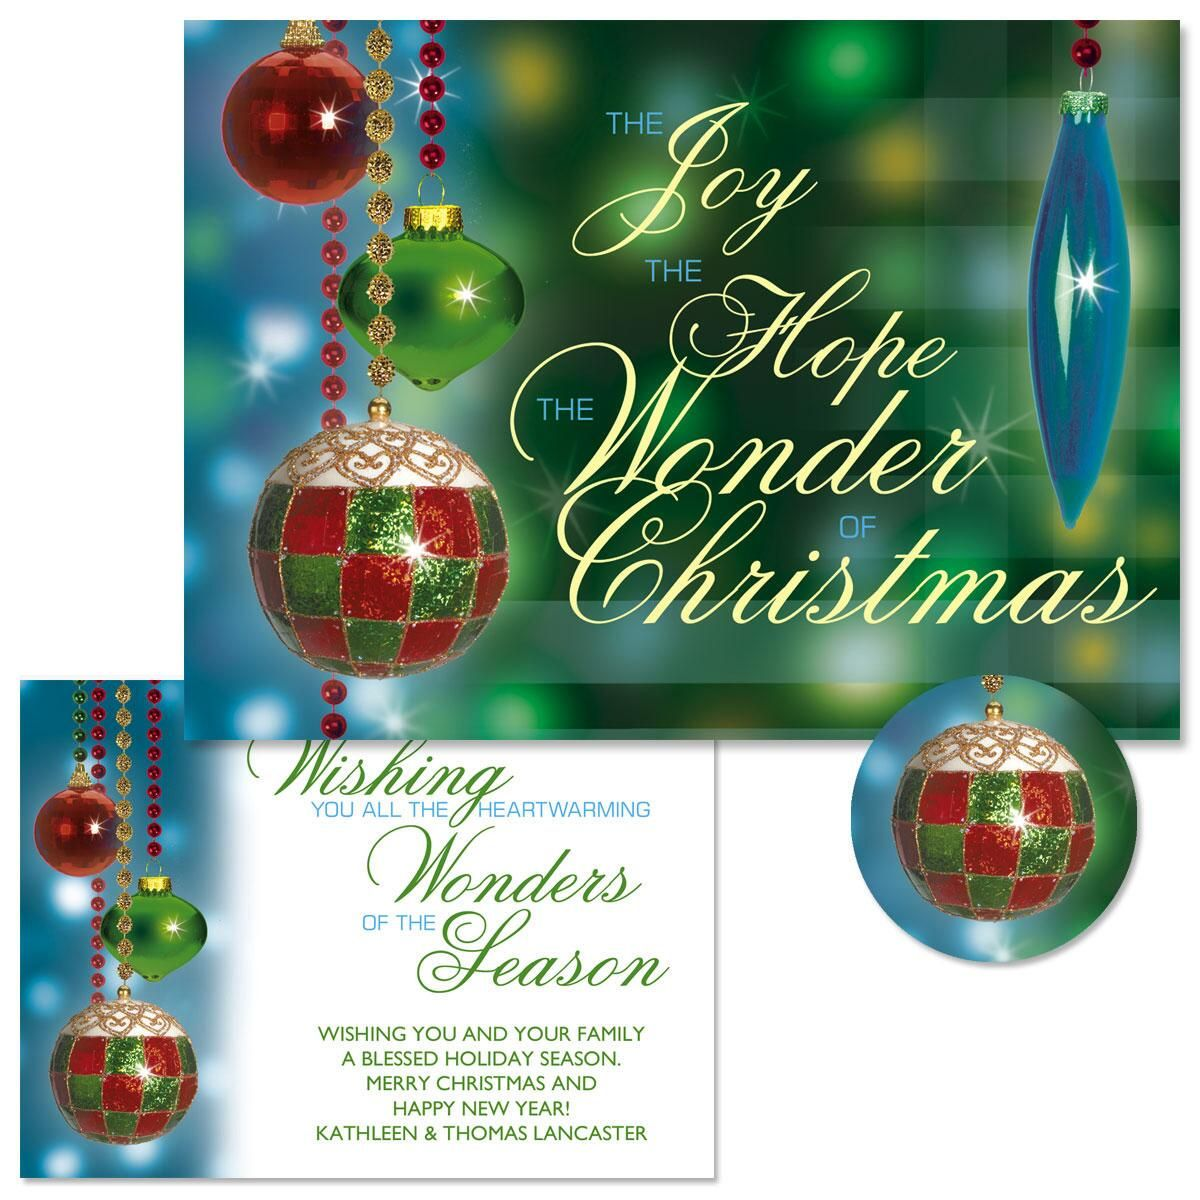 Palazzo Christmas Cards | Colorful Images